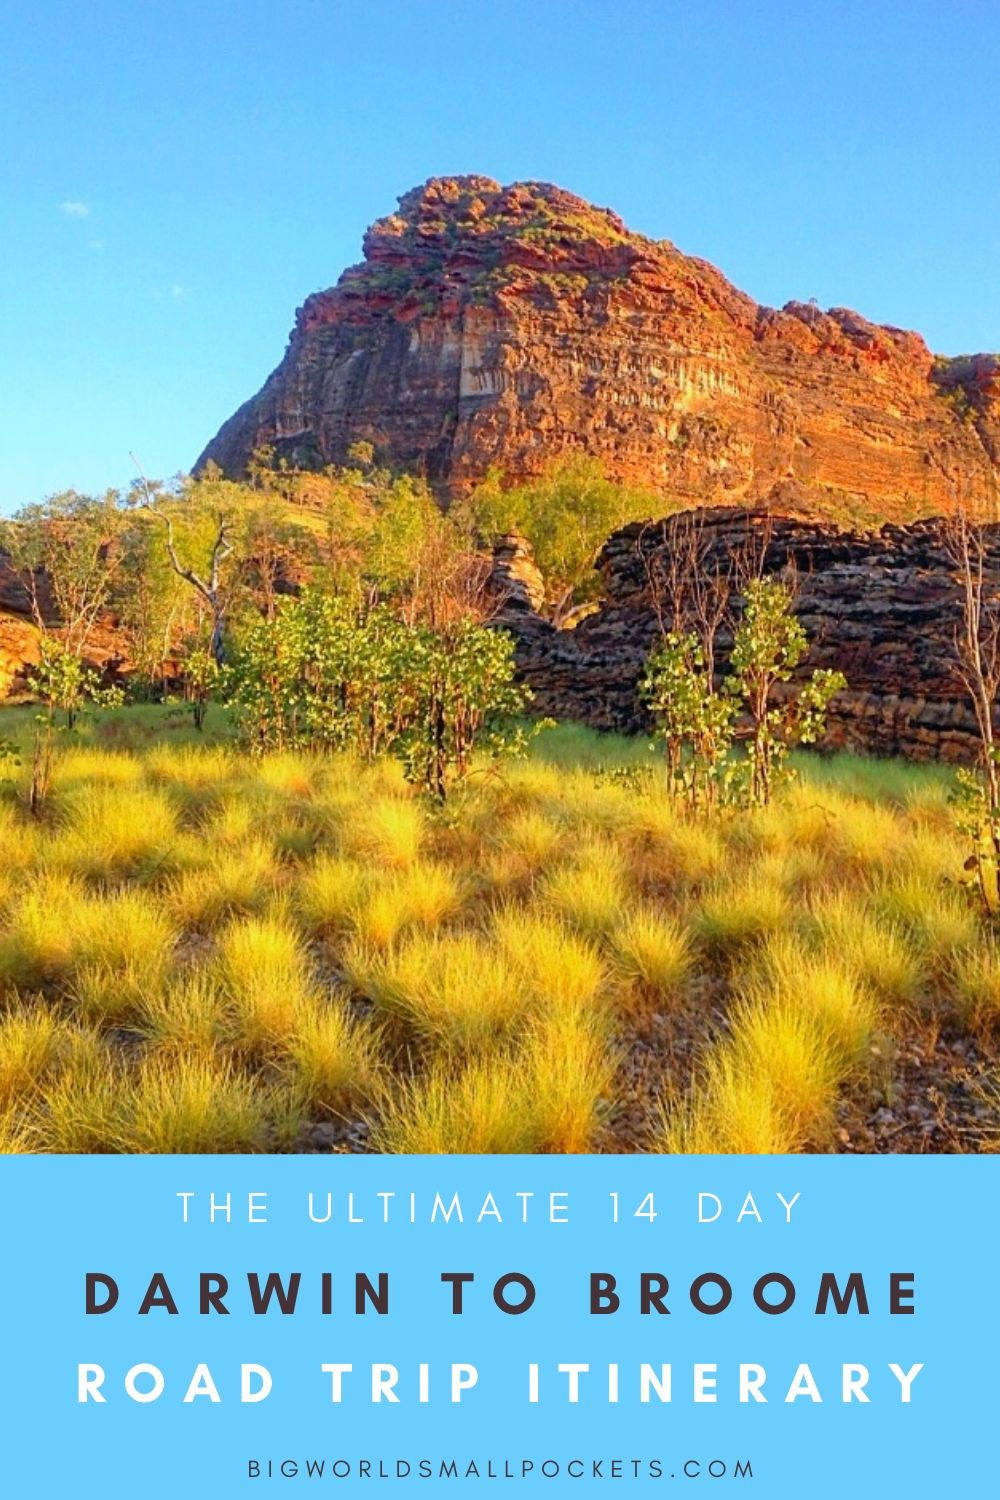 The Ultimate Darwin to Broome Road Trip Itinerary